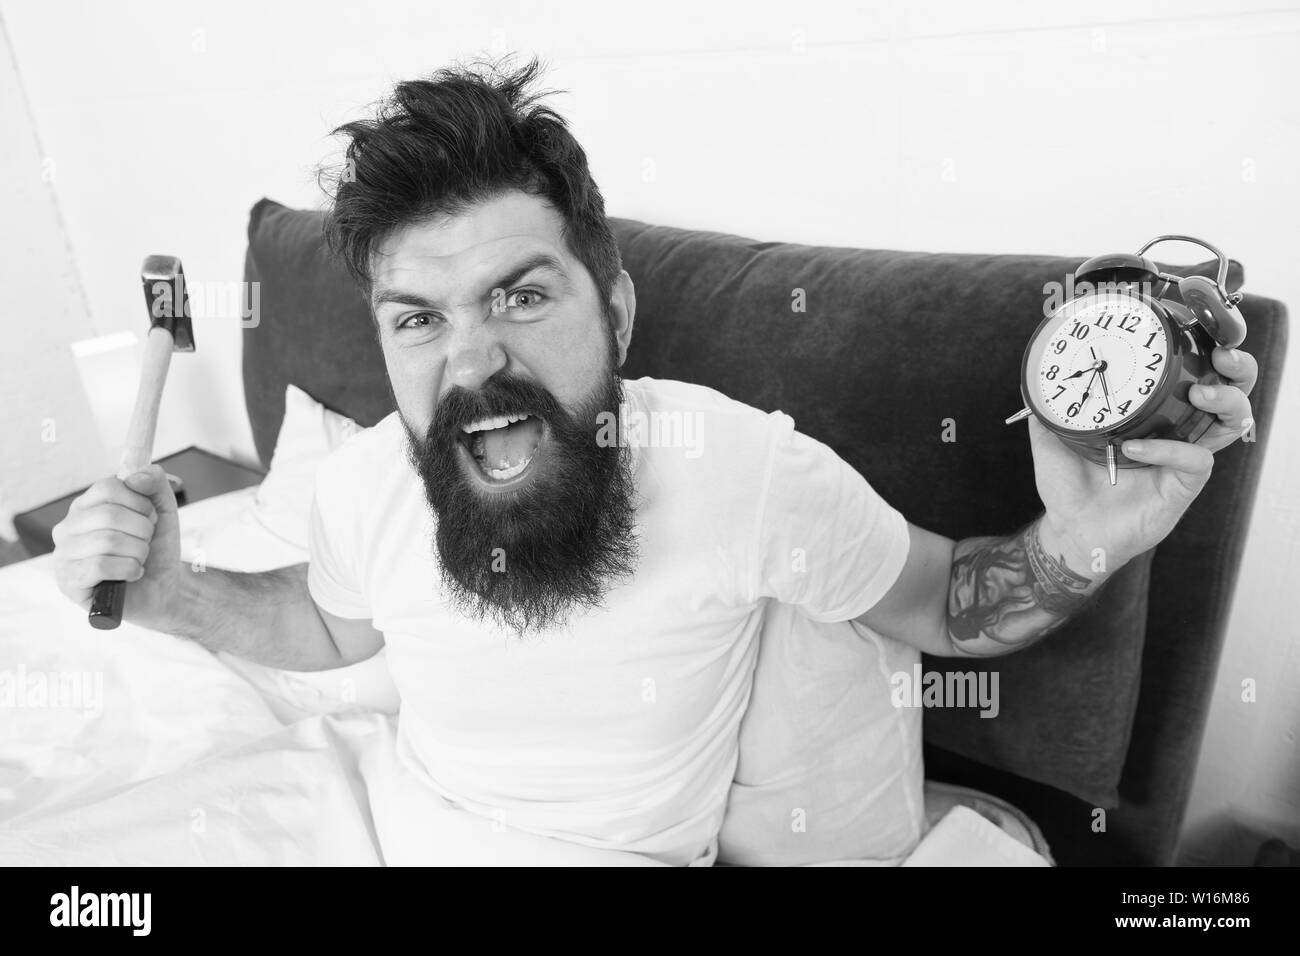 Tips for waking up early. Tips for becoming an early riser. Man bearded hipster sleepy face in bed with alarm clock. Problem with early morning awakening. Get up with alarm clock. Overslept again. - Stock Image